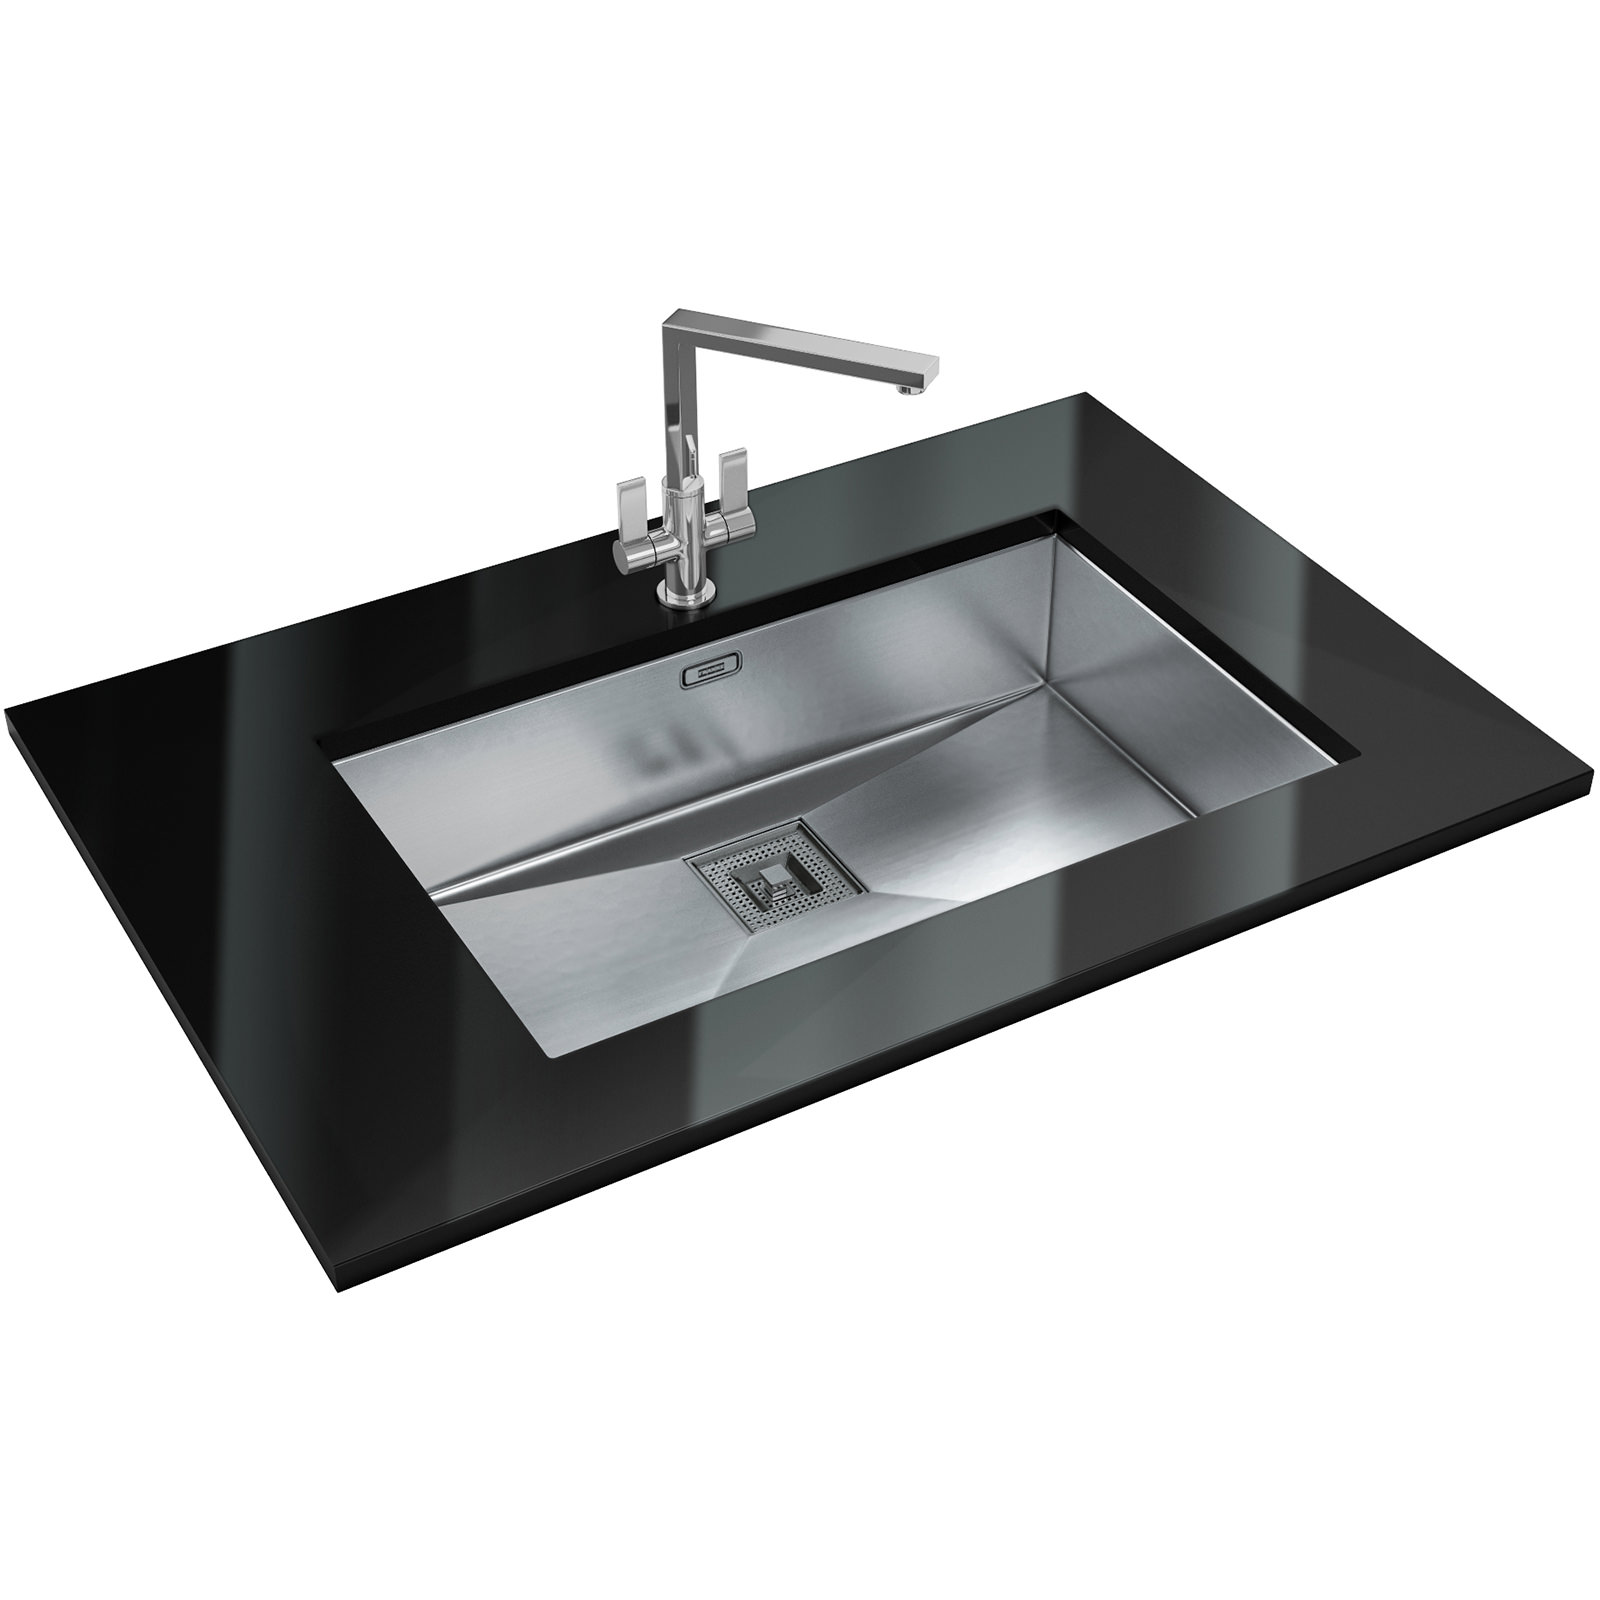 Franke peak designer pack pkx 110 70 stainless steel sink for Designer stainless steel sinks